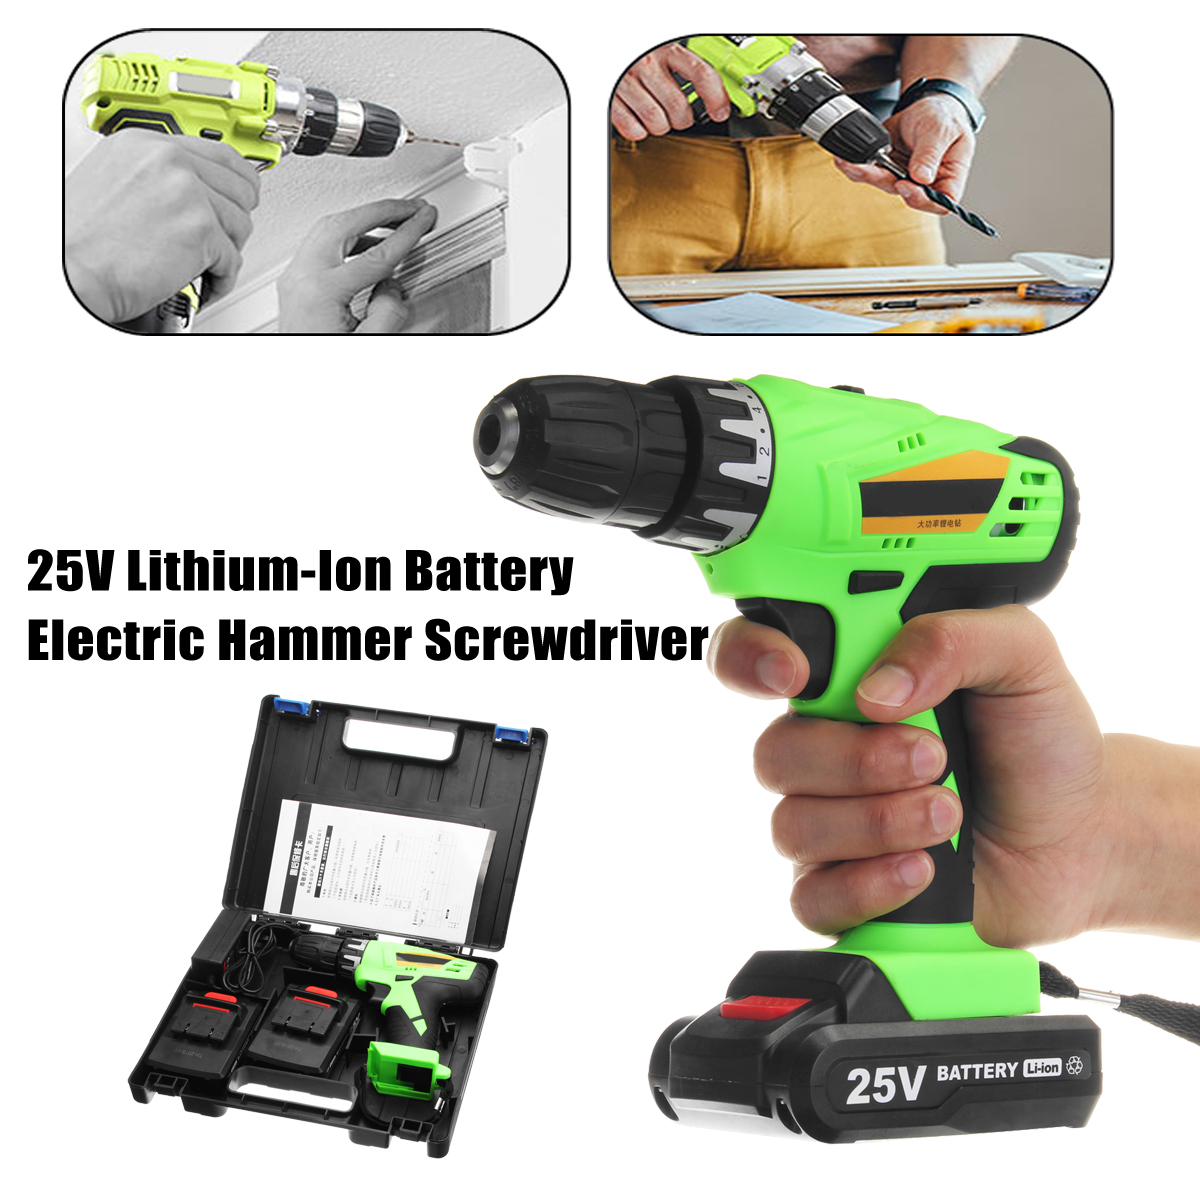 25V Cordless Power Drill Multifunction Electric Screwdriver Kit Lithium-Ion Battery Rechargeable Home Power Tools 25v multifunction power tools cordless electric drill electric screwdriver with lithium battery rechargeable miniature drill